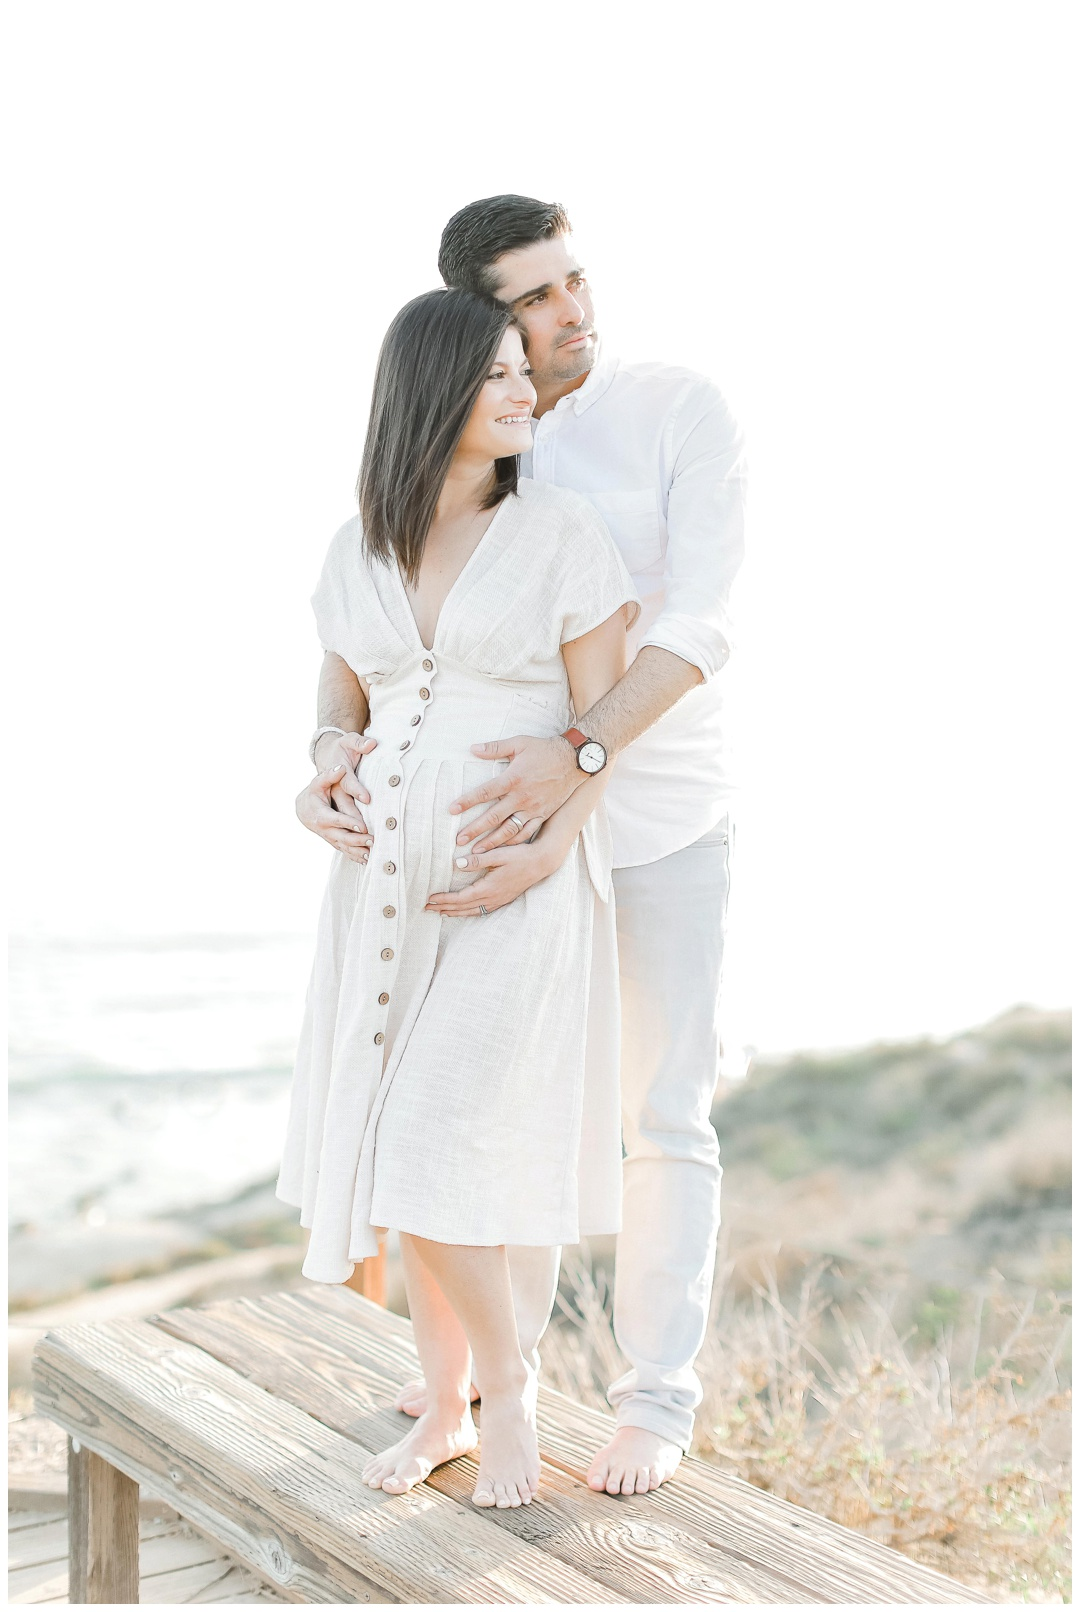 Crystal-Cove-State-Beach-Maternity-Session-Crystal-Cove-Newport-Beach-Maternity-Photographer-Crystal-Cove-Session-Cori-Kleckner-Photography-Orange-County-Maternity-Family-Photos-Session-_0904.jpg